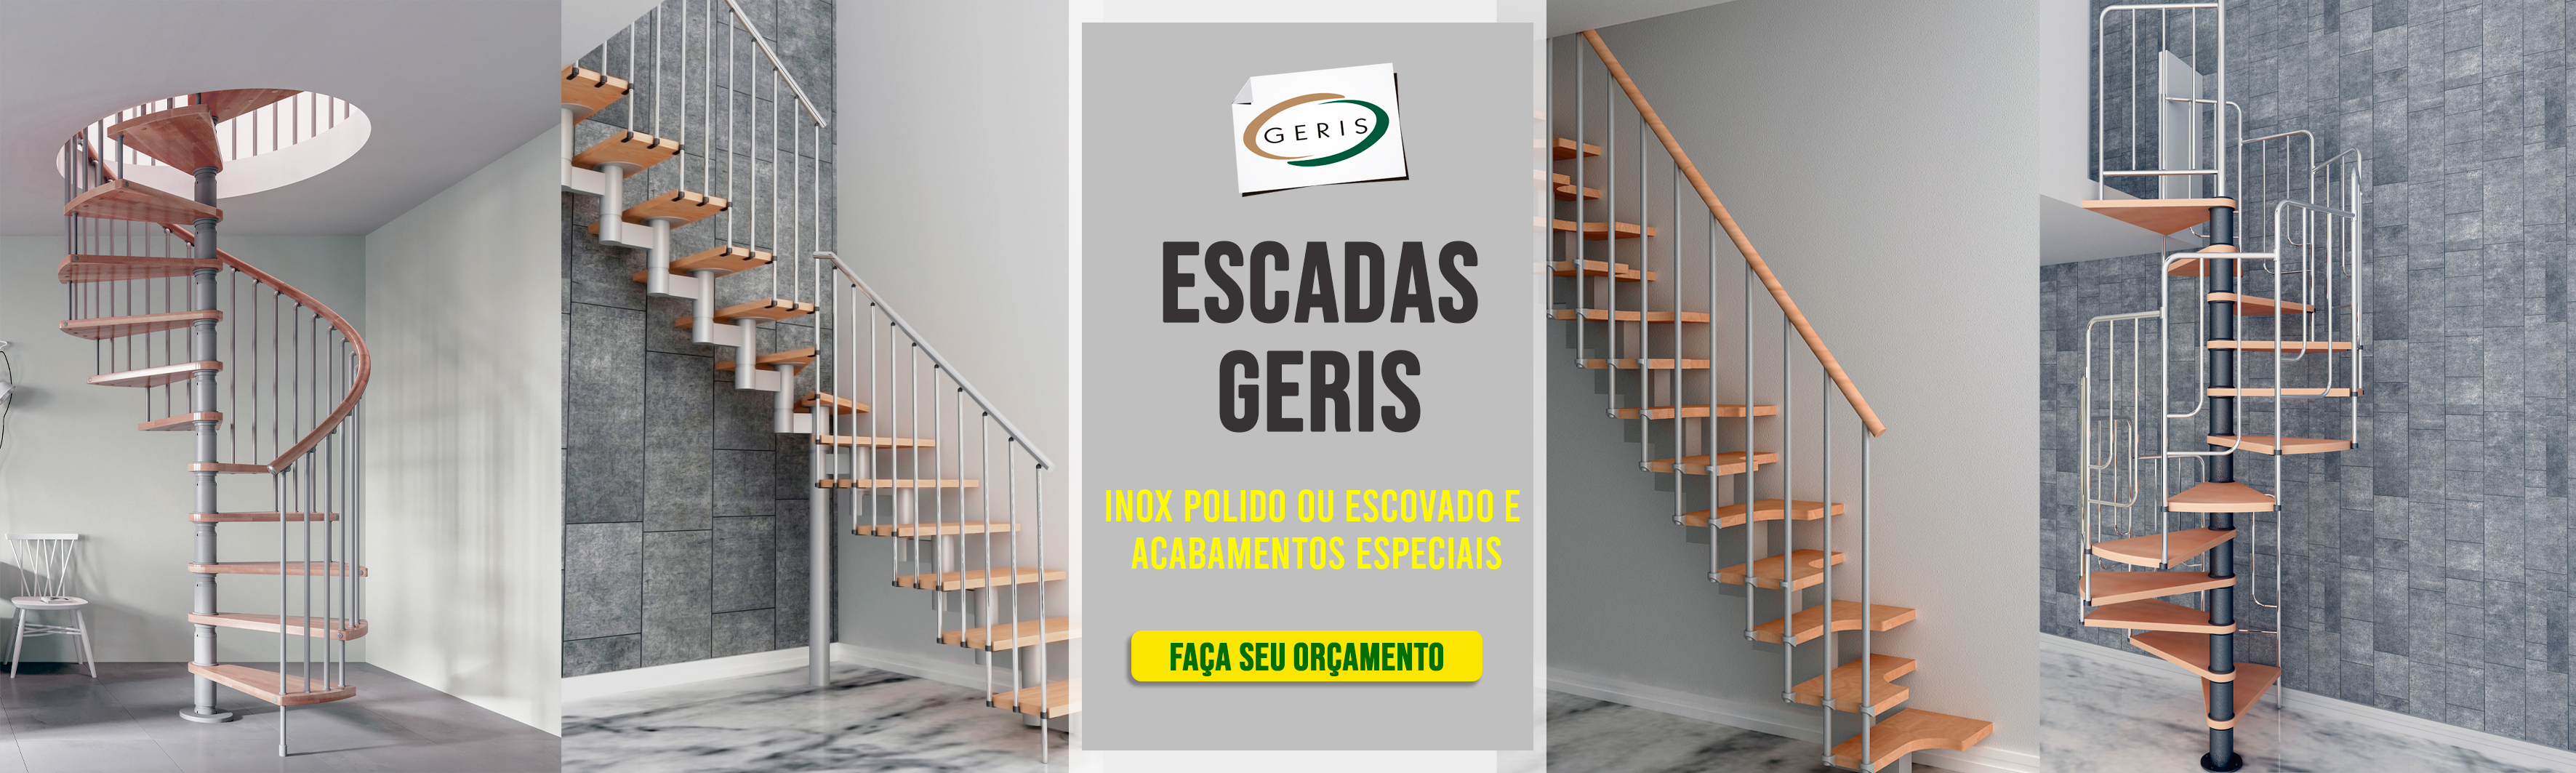 escadas geris